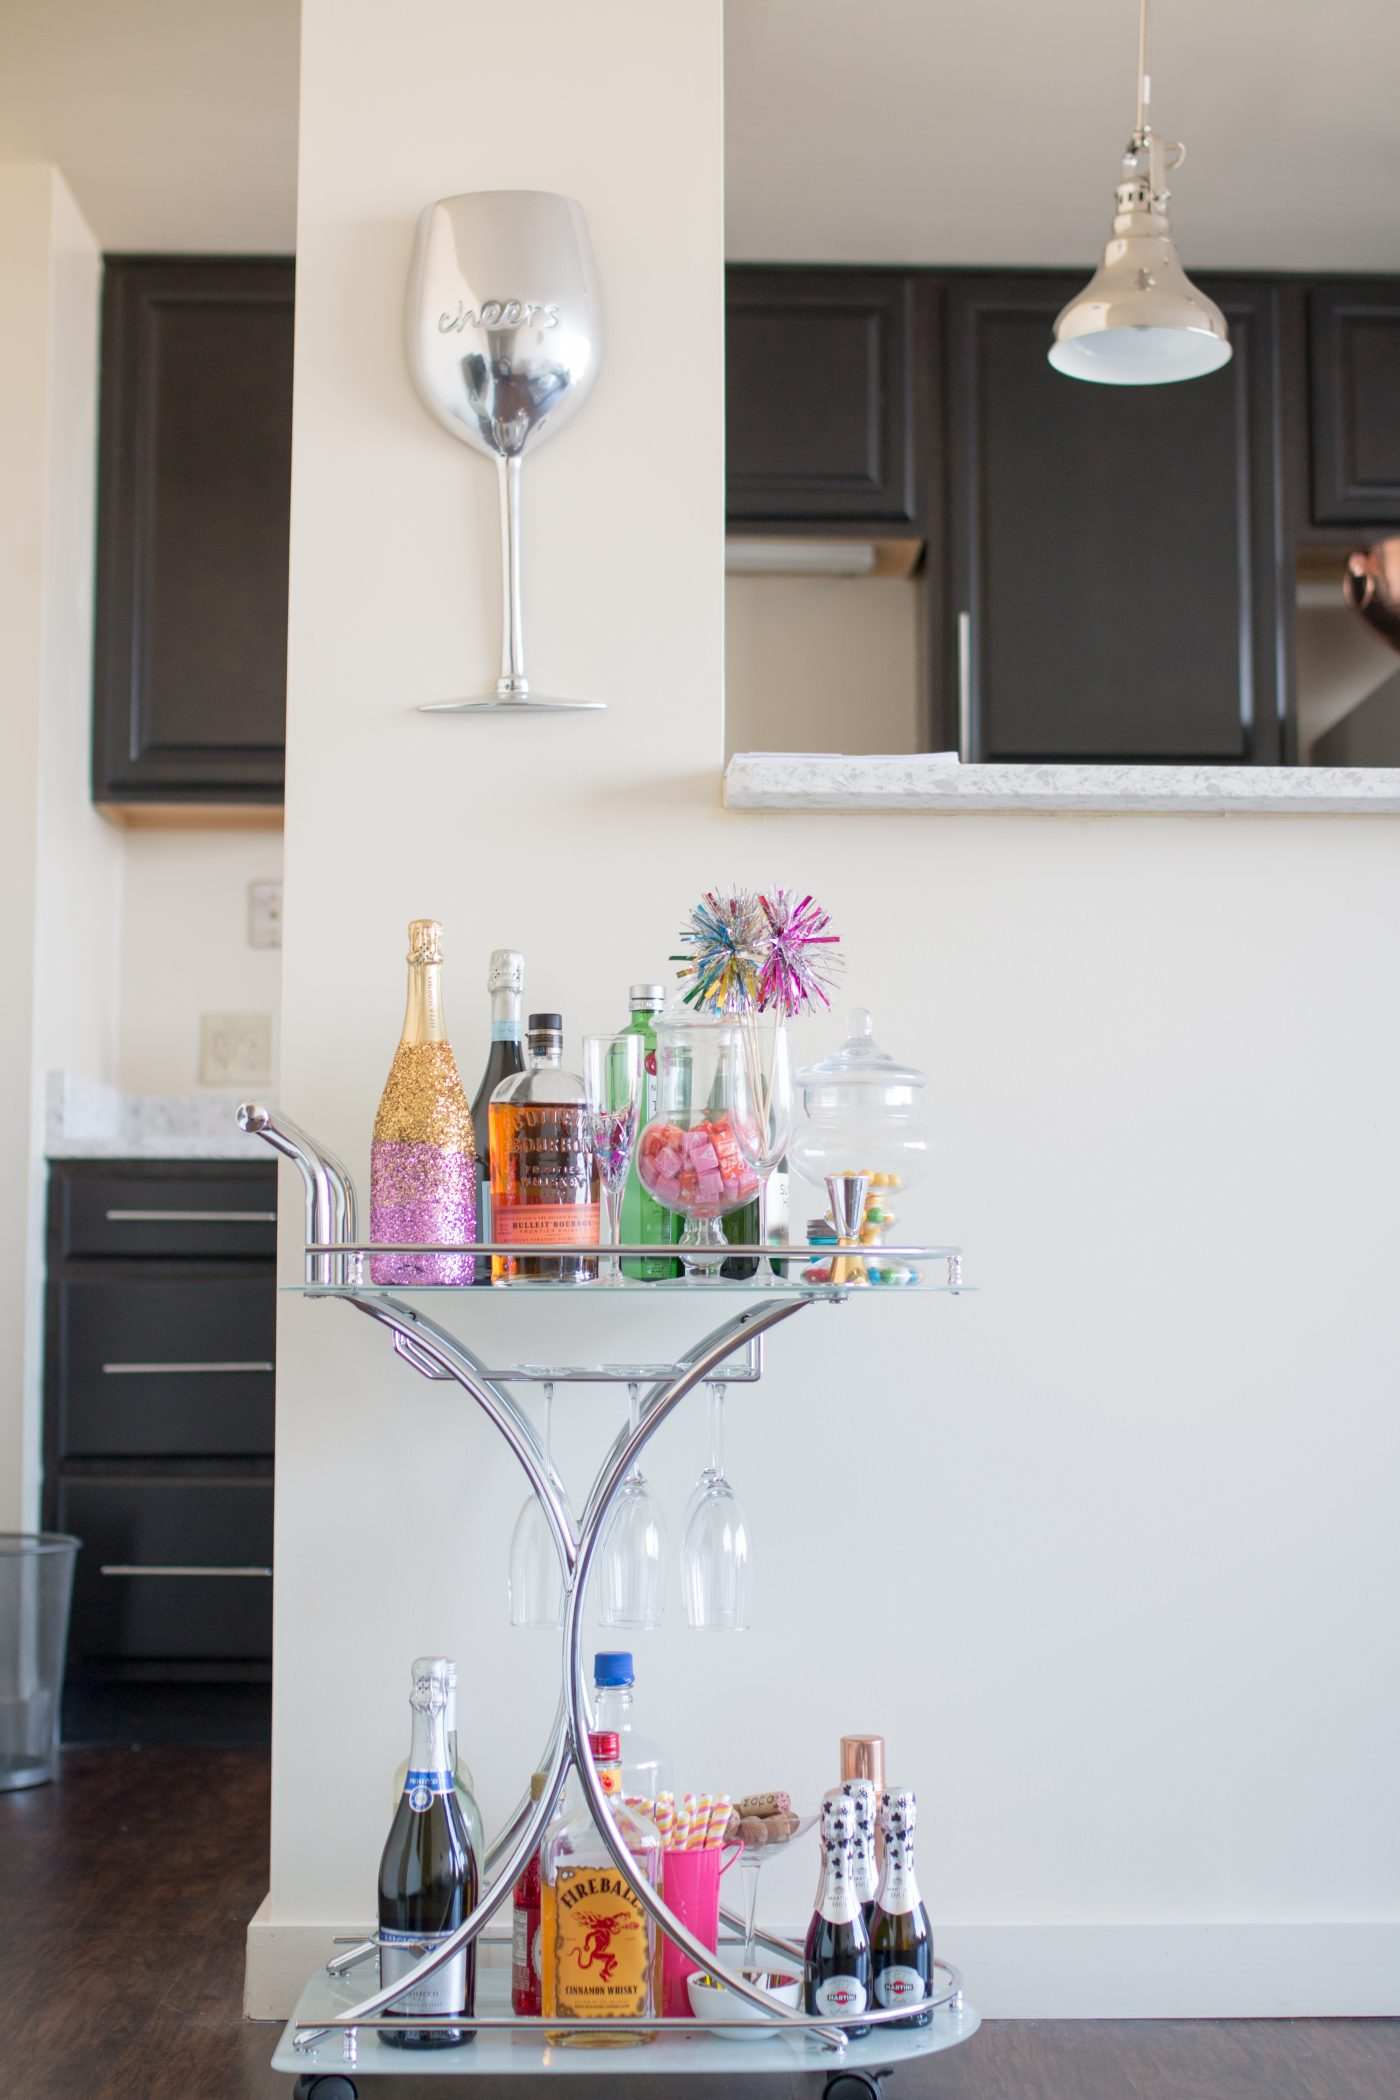 DIY Glitter Ombré Champagne Bottle & Colorful Bar Cart